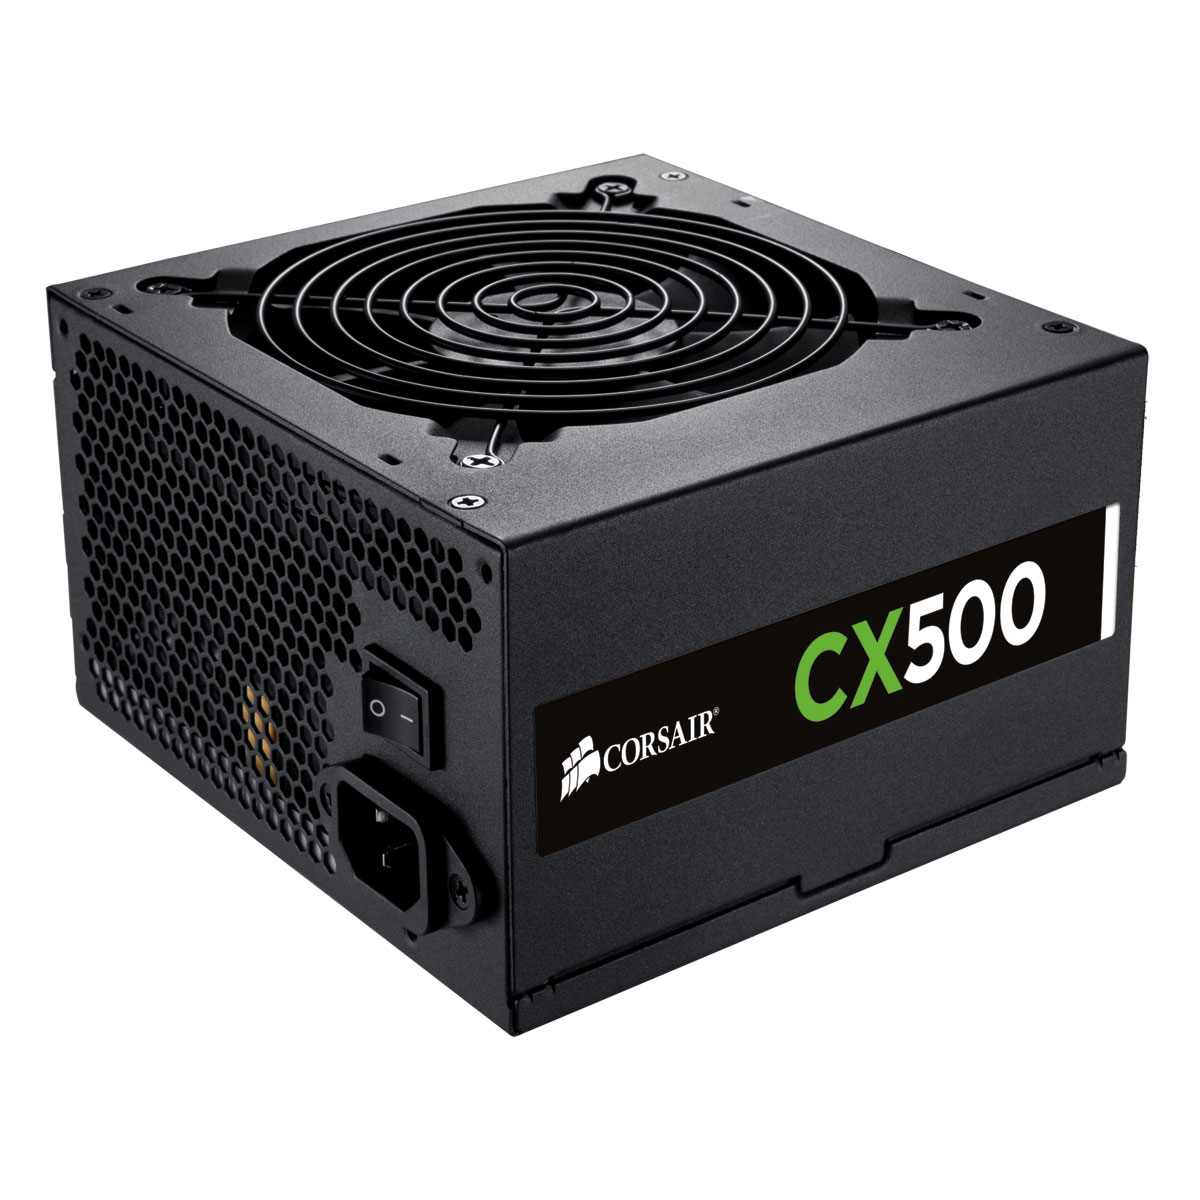 Alimentation PC Corsair CX500 80PLUS Bronze Alimentation 500W ATX 12V 2.3 - 80PLUS Bronze (Garantie 3 ans par Corsair)